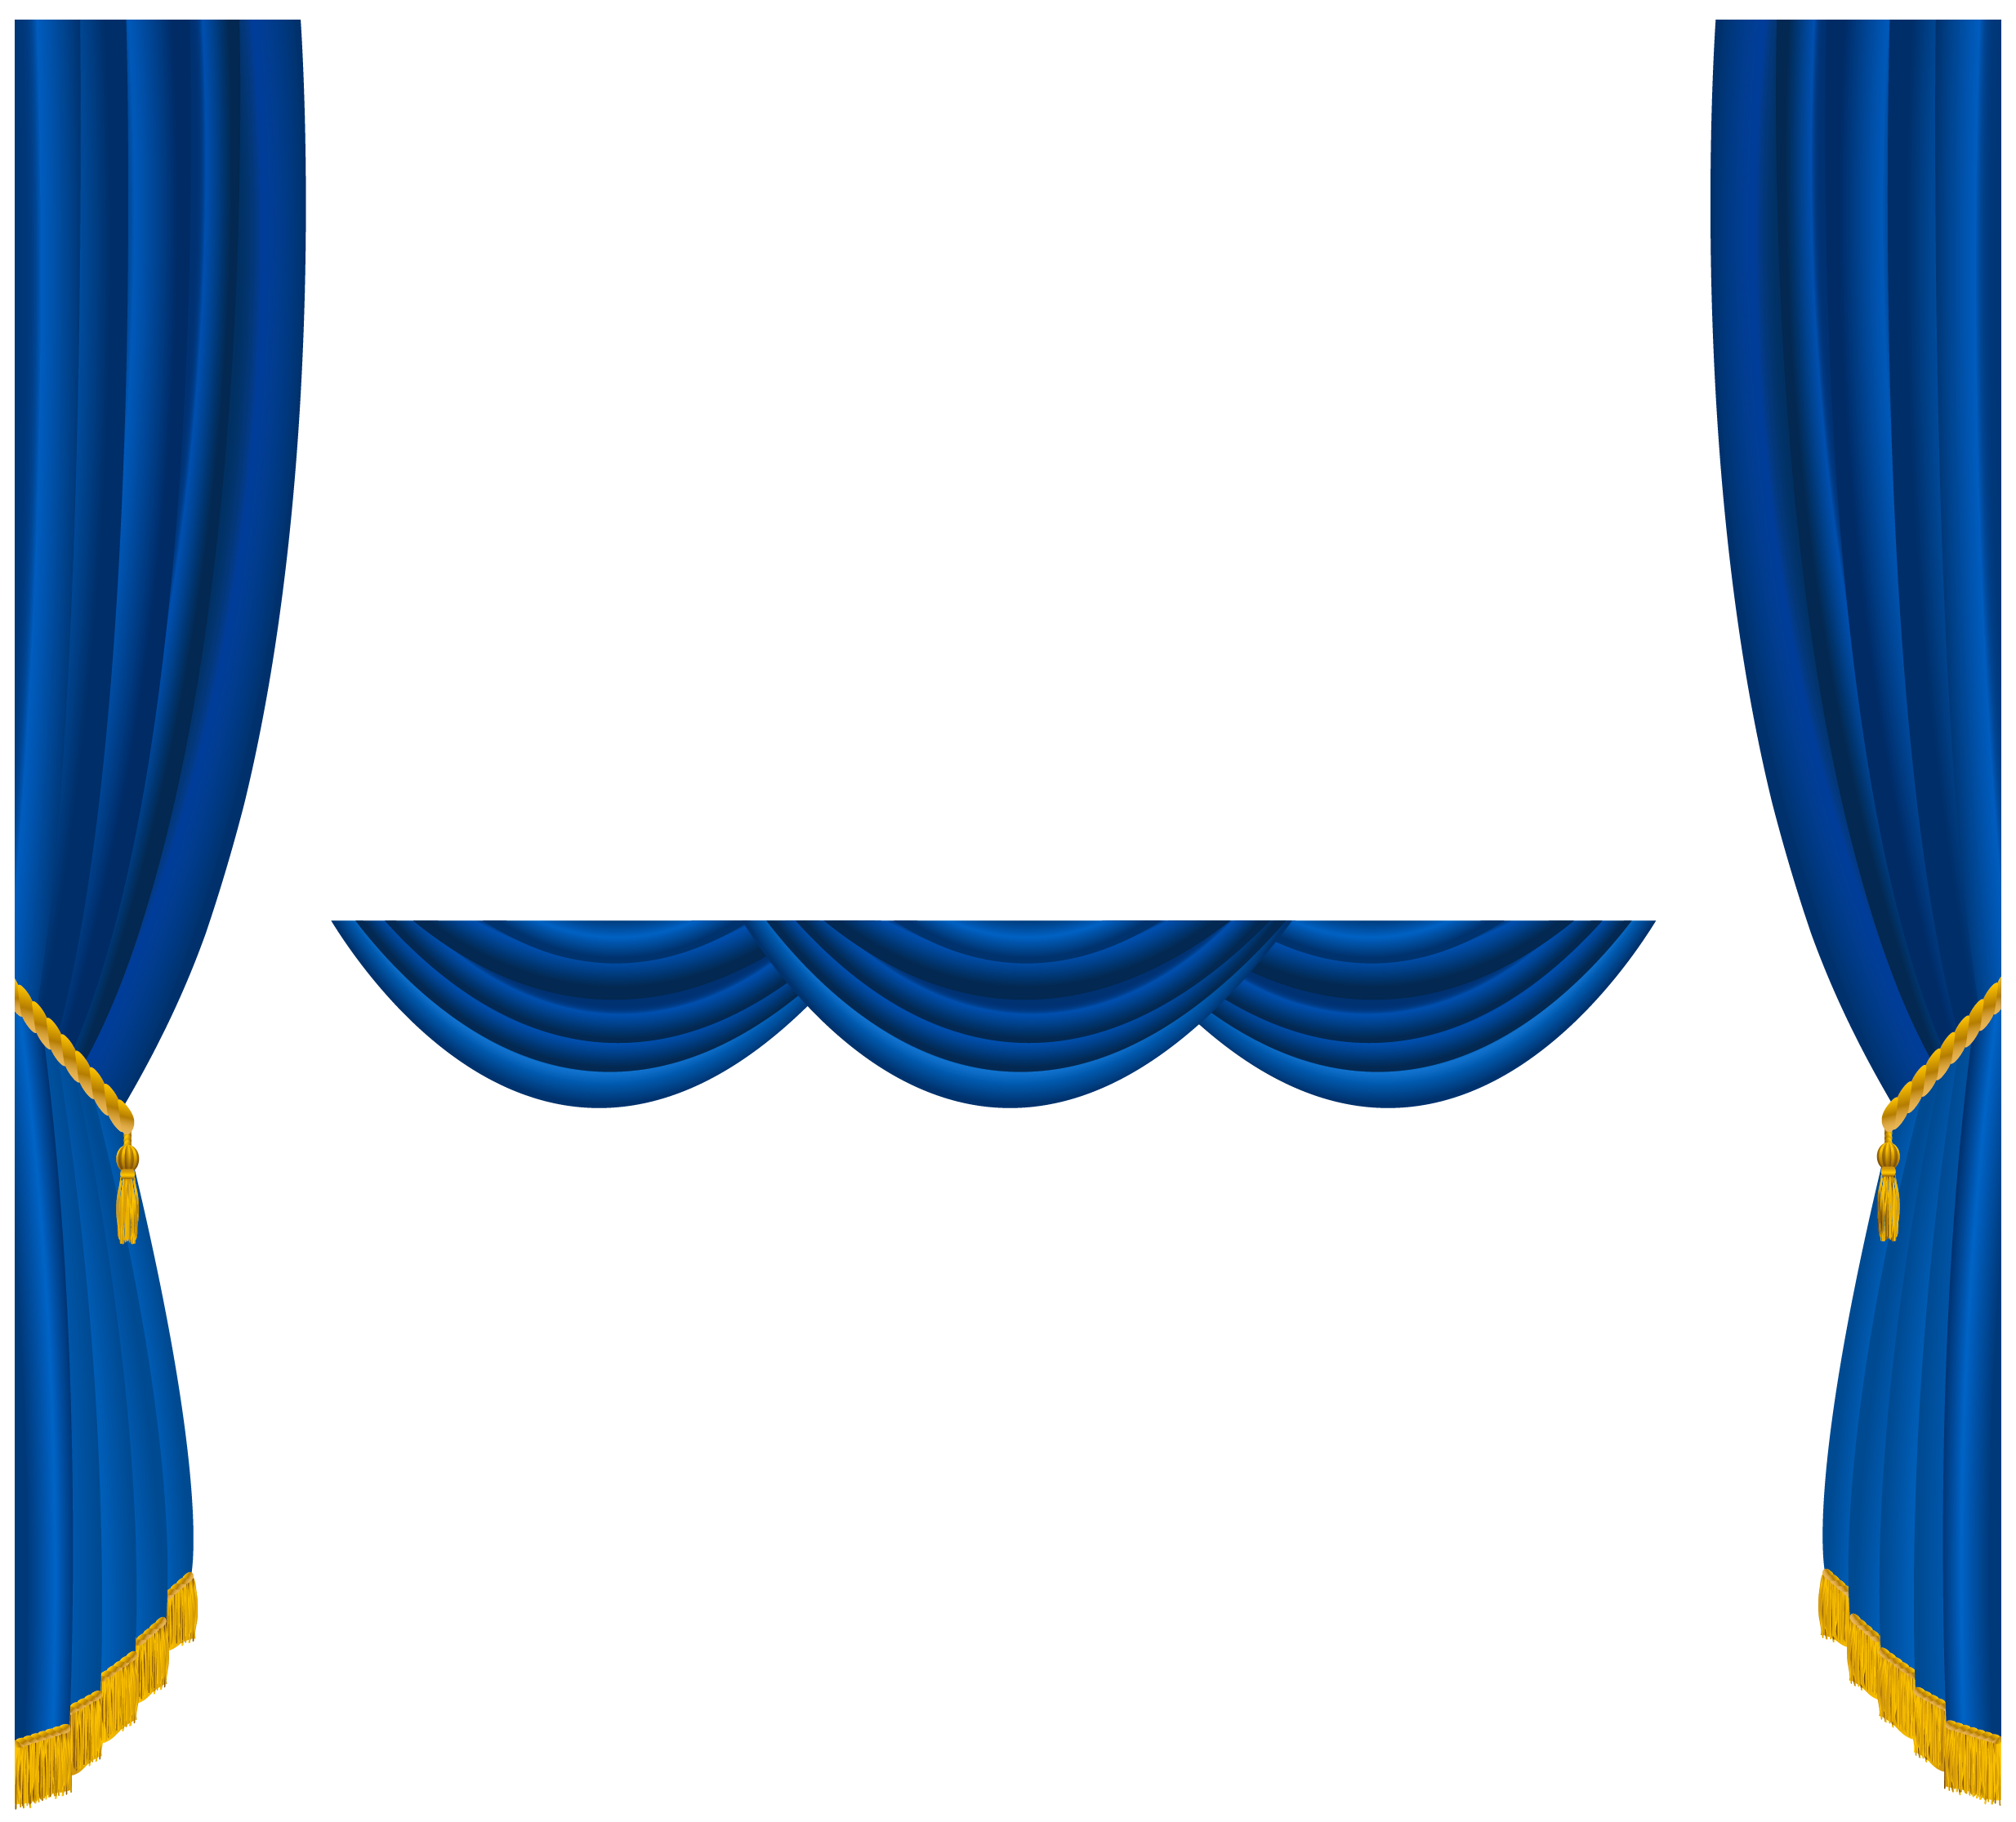 Stage star clipart banner free Transparent Blue Curtains Decoration PNG Clipart | Gallery ... banner free